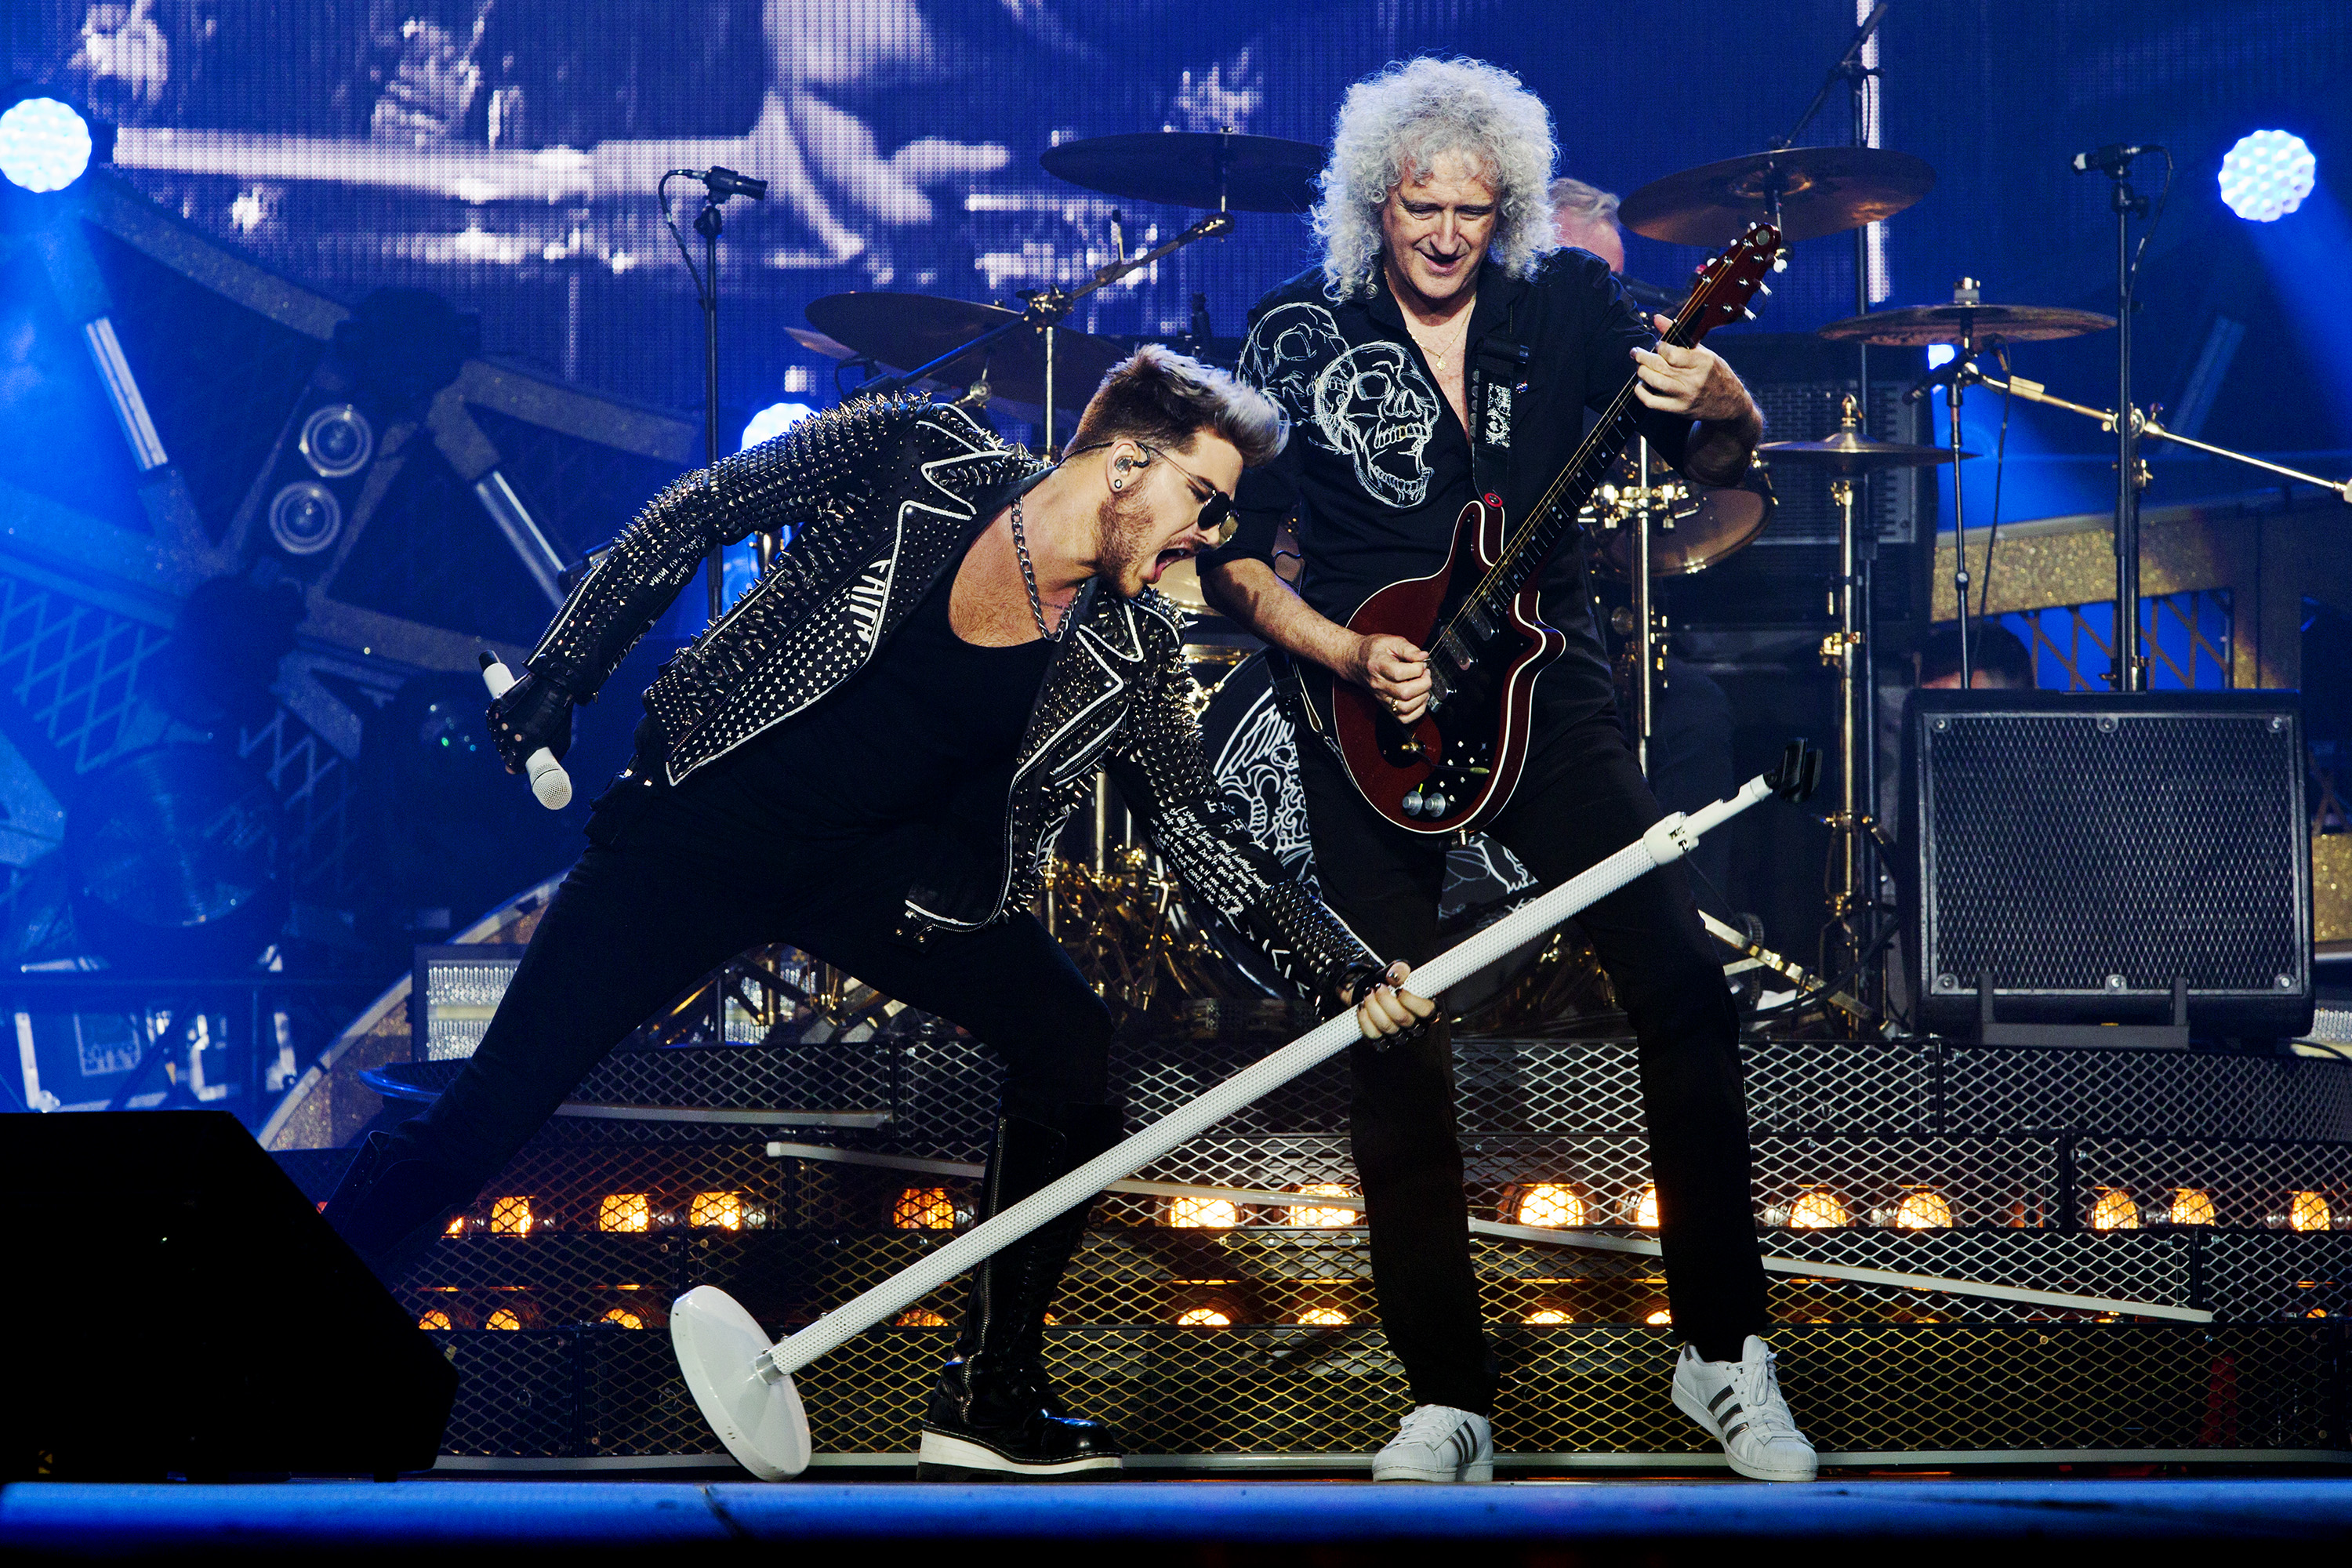 Watch The Queen + Adam Lambert Story Monday, April 29 8|7c